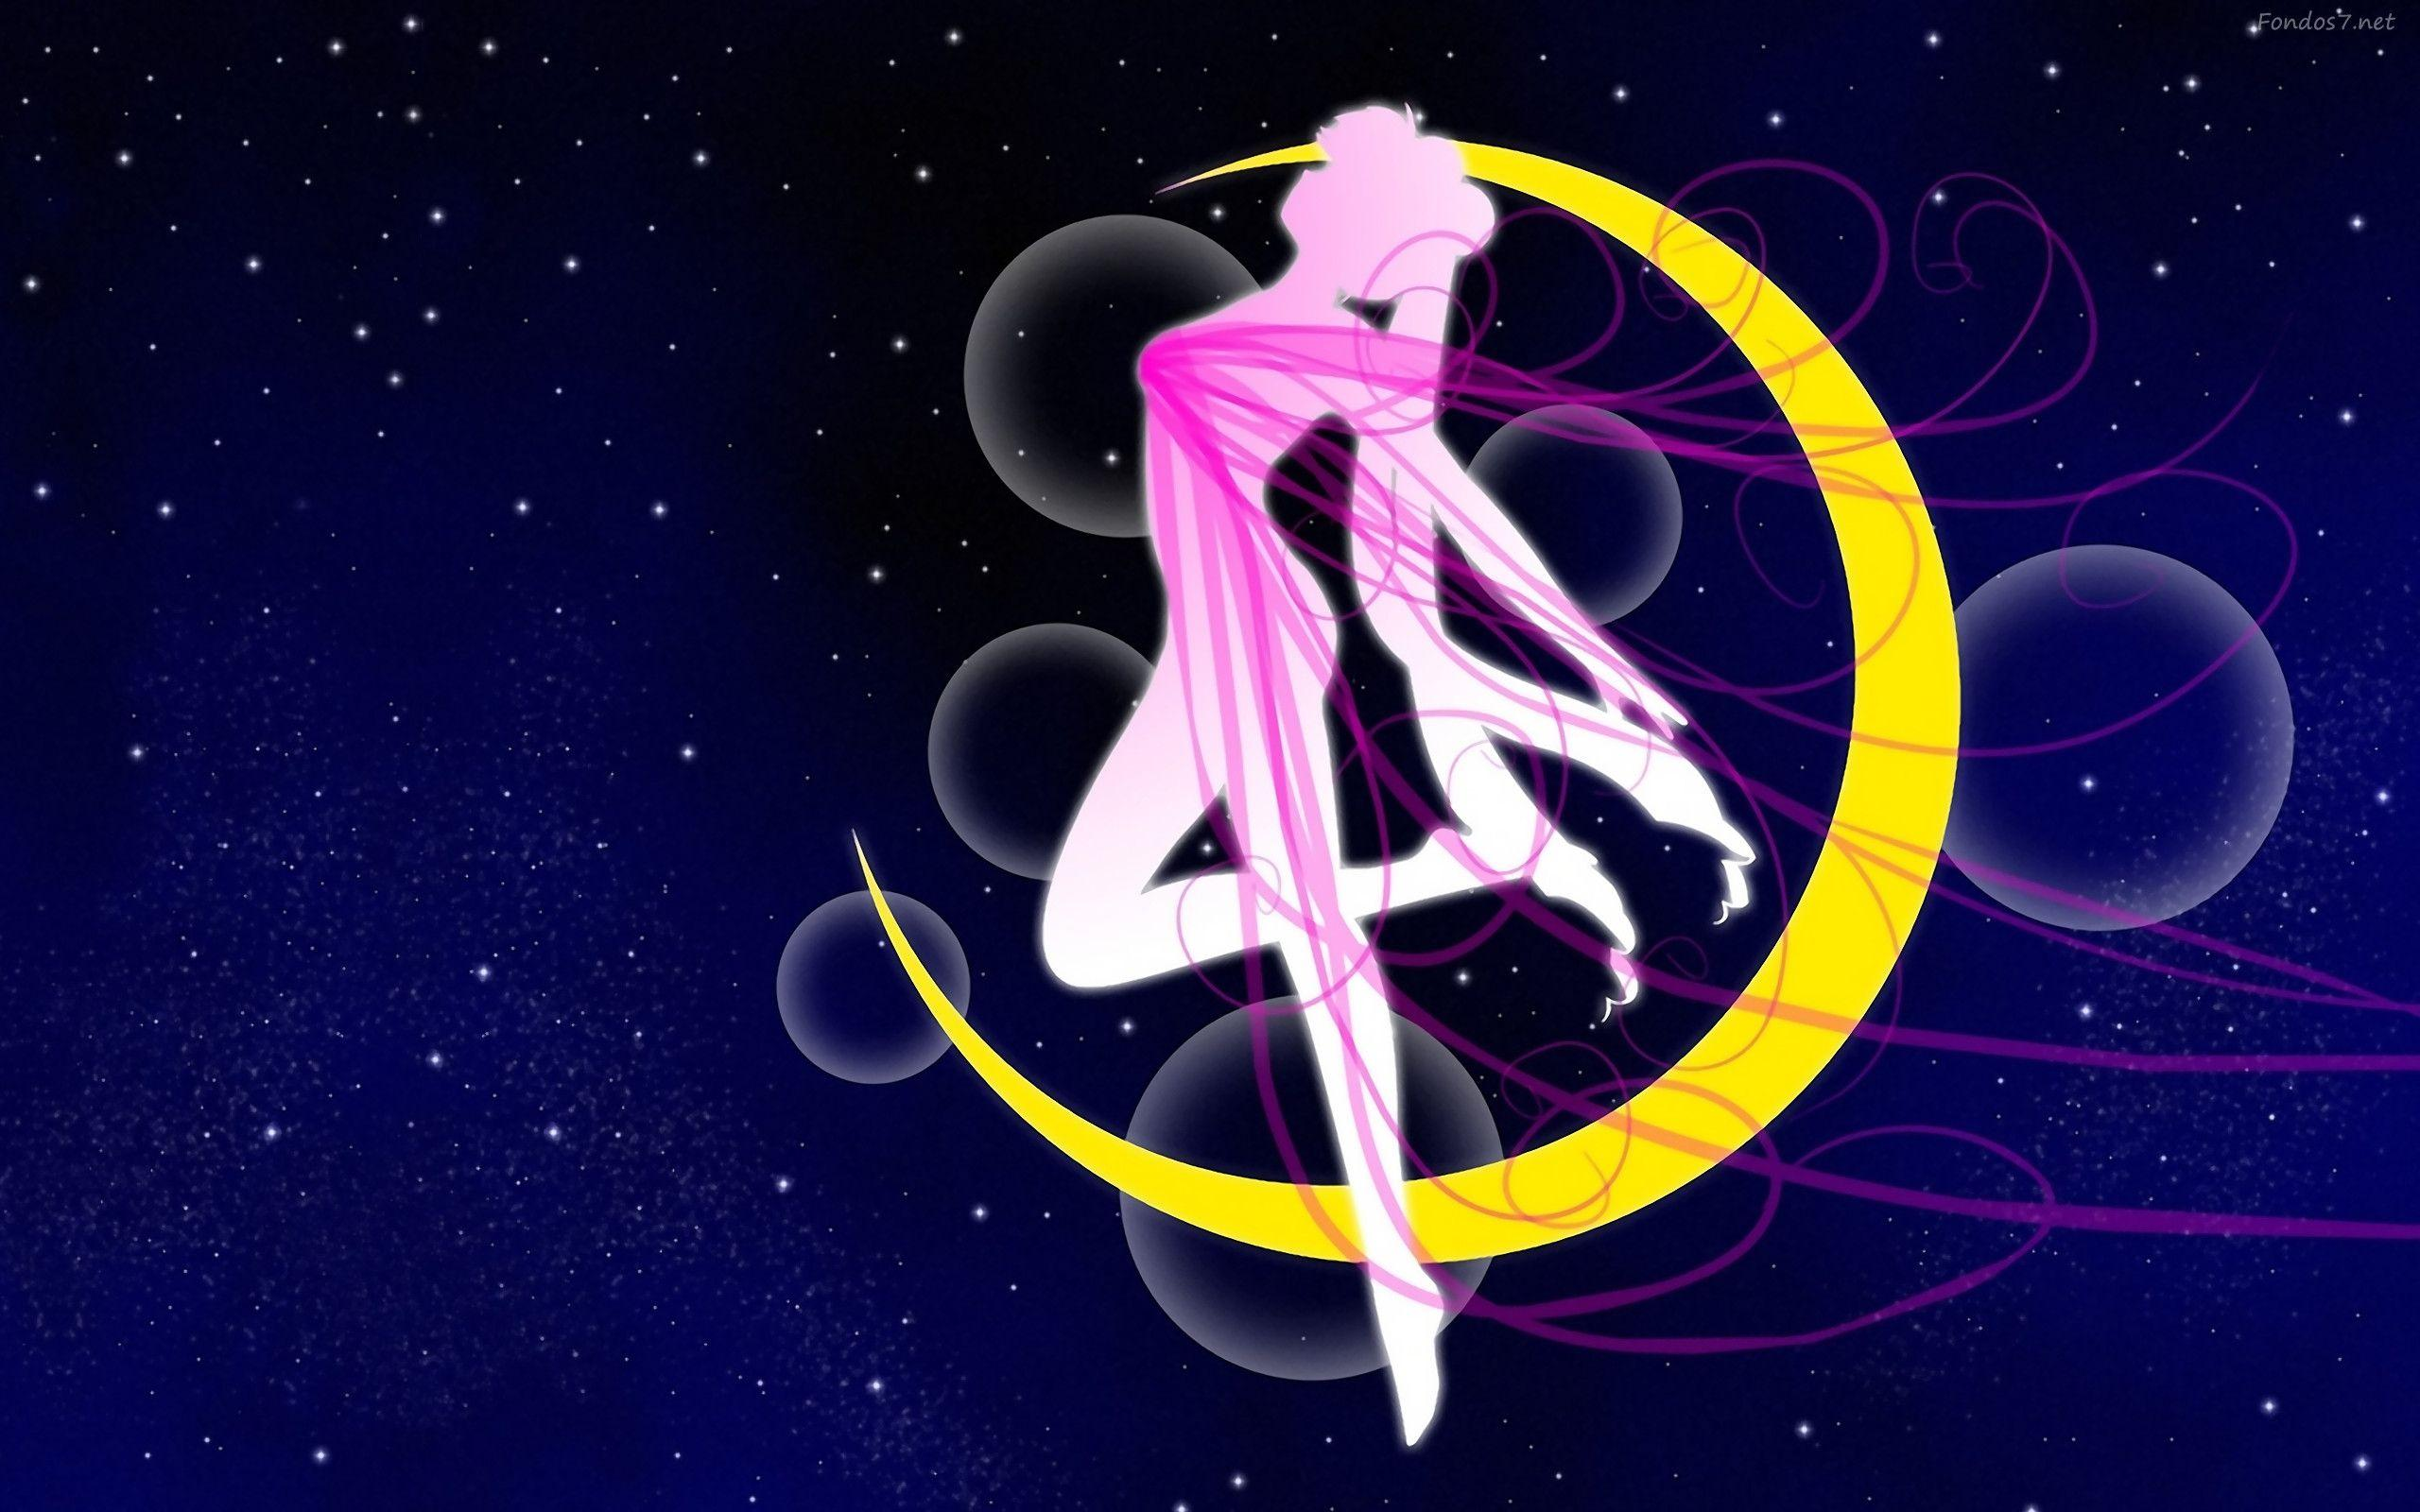 sailor moon - photo #41